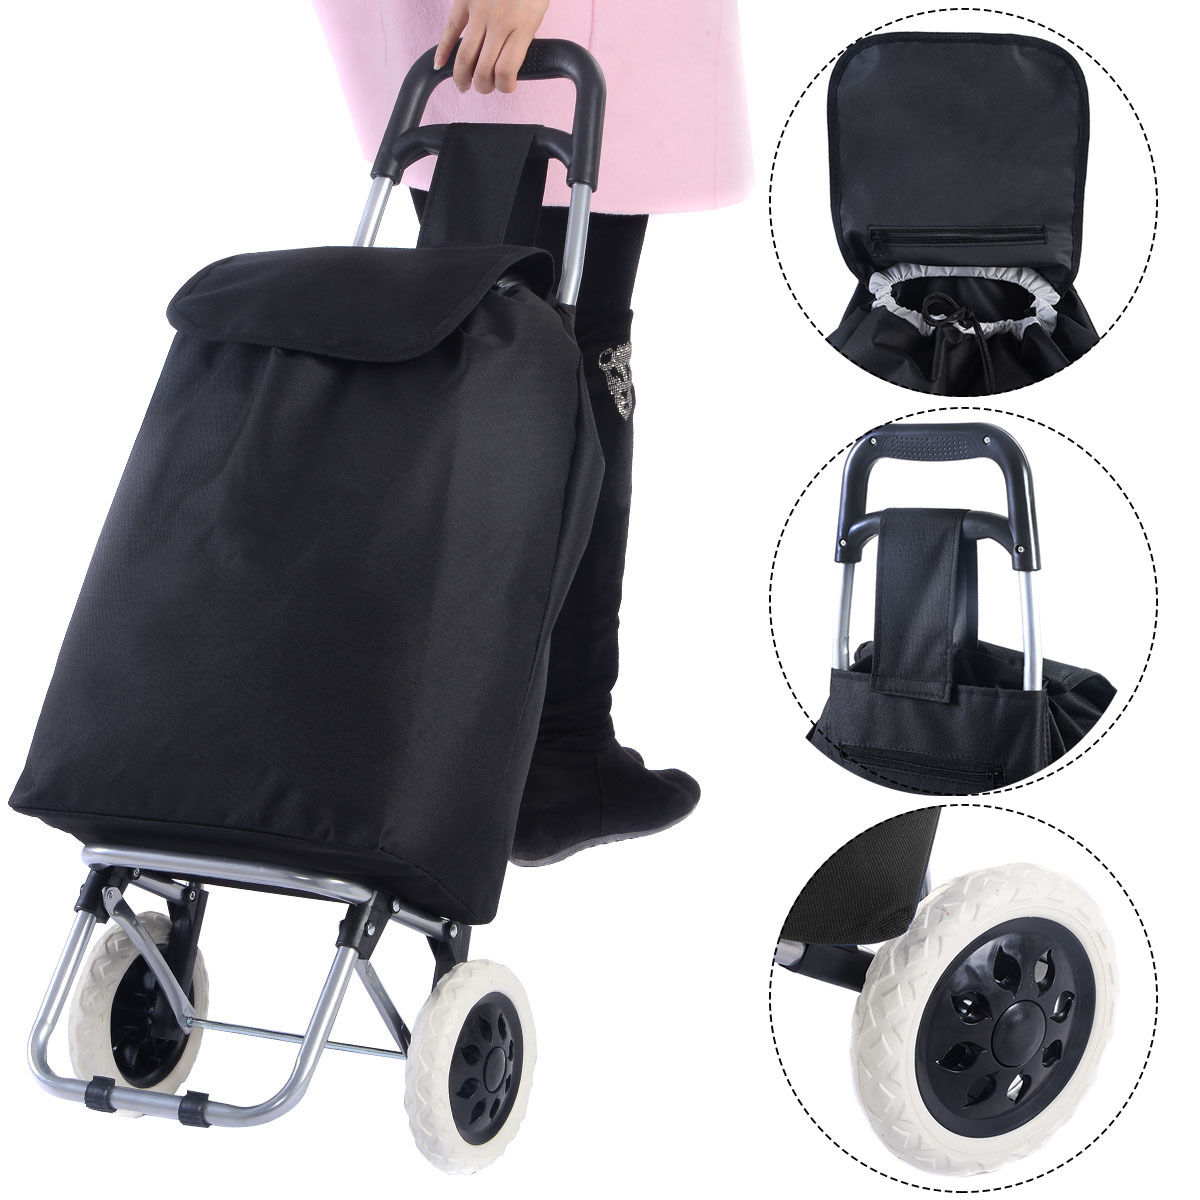 Travel Shopping Trolley Bag Grocery Rolling Wheel Cart